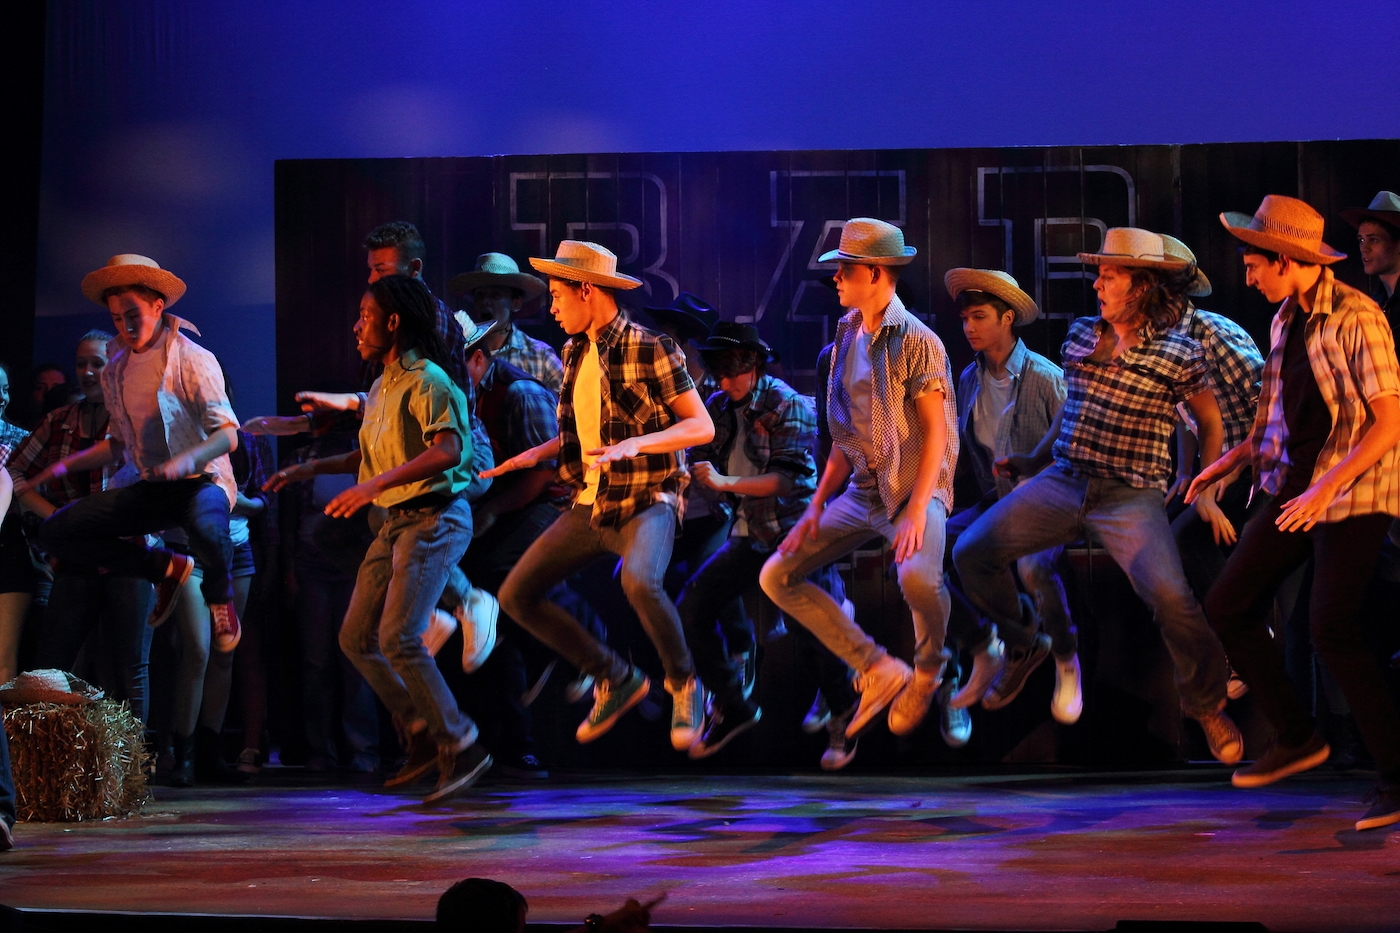 Colin Wood Footloose Thumbnail.JPG